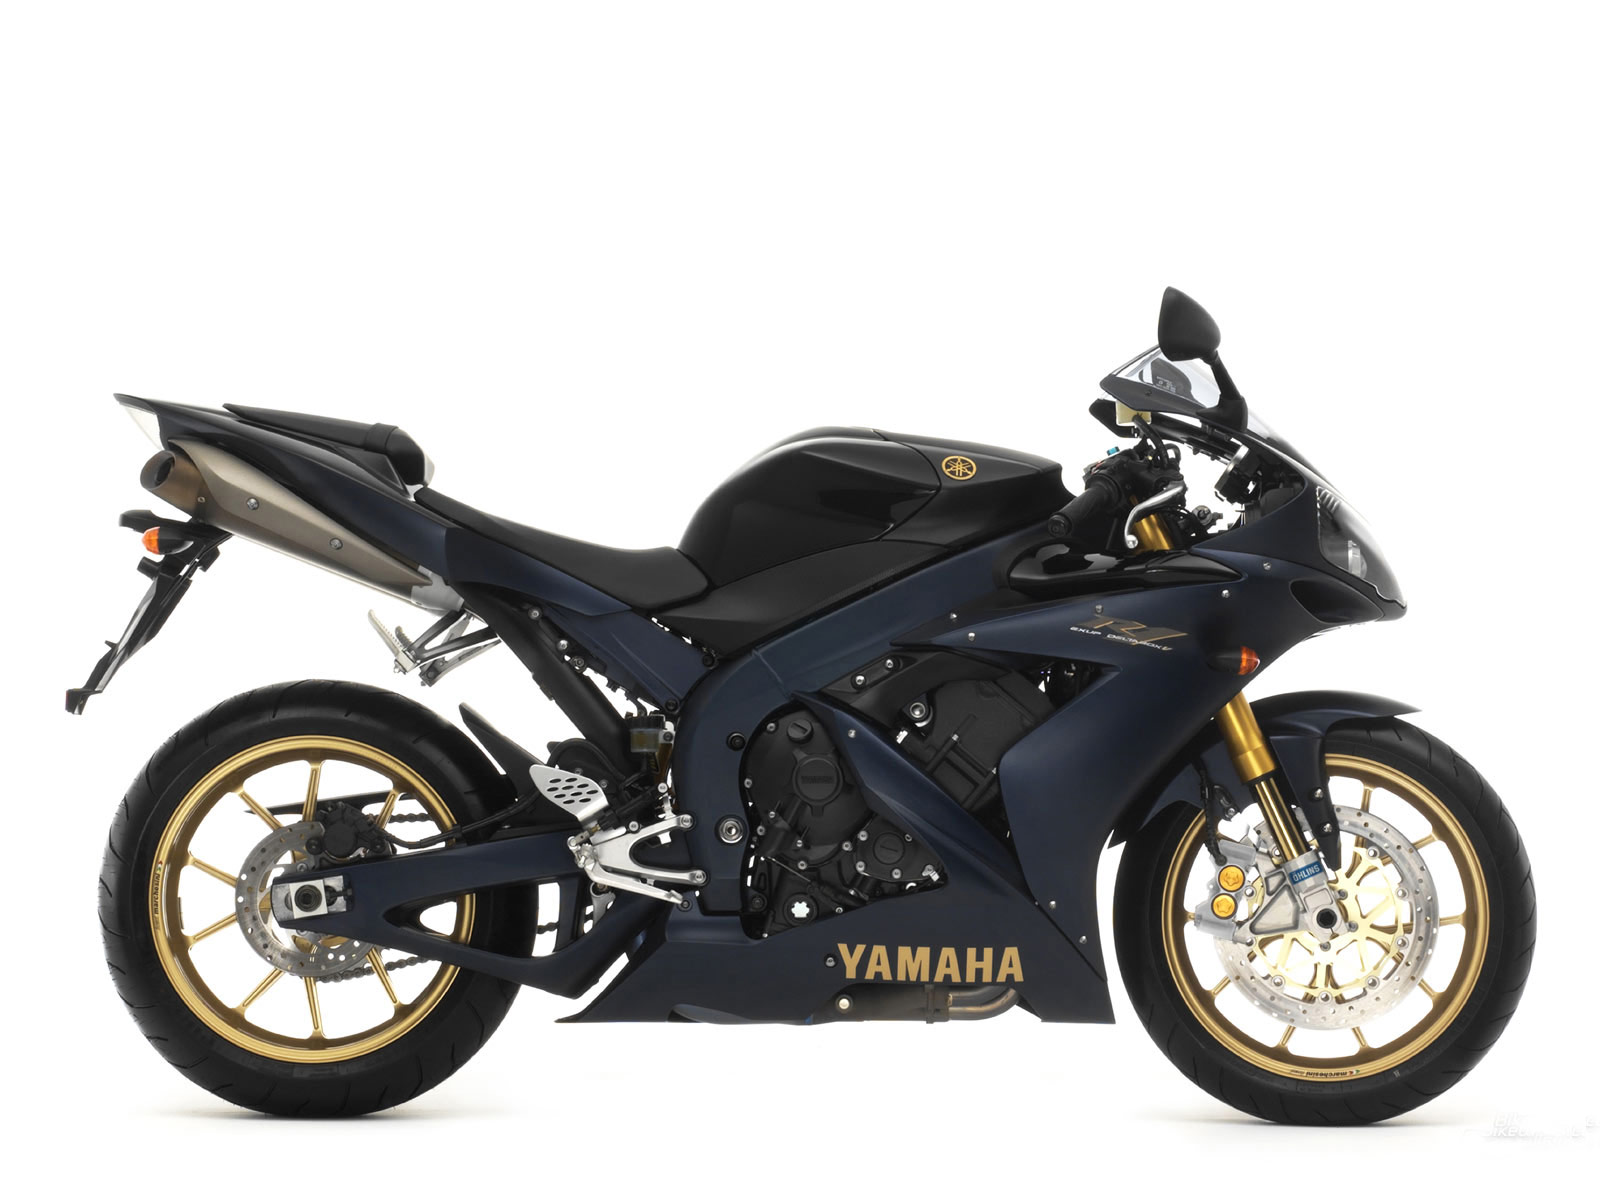 2006 yamaha yzf r1sp pictures and specifications for 2006 yamaha r1